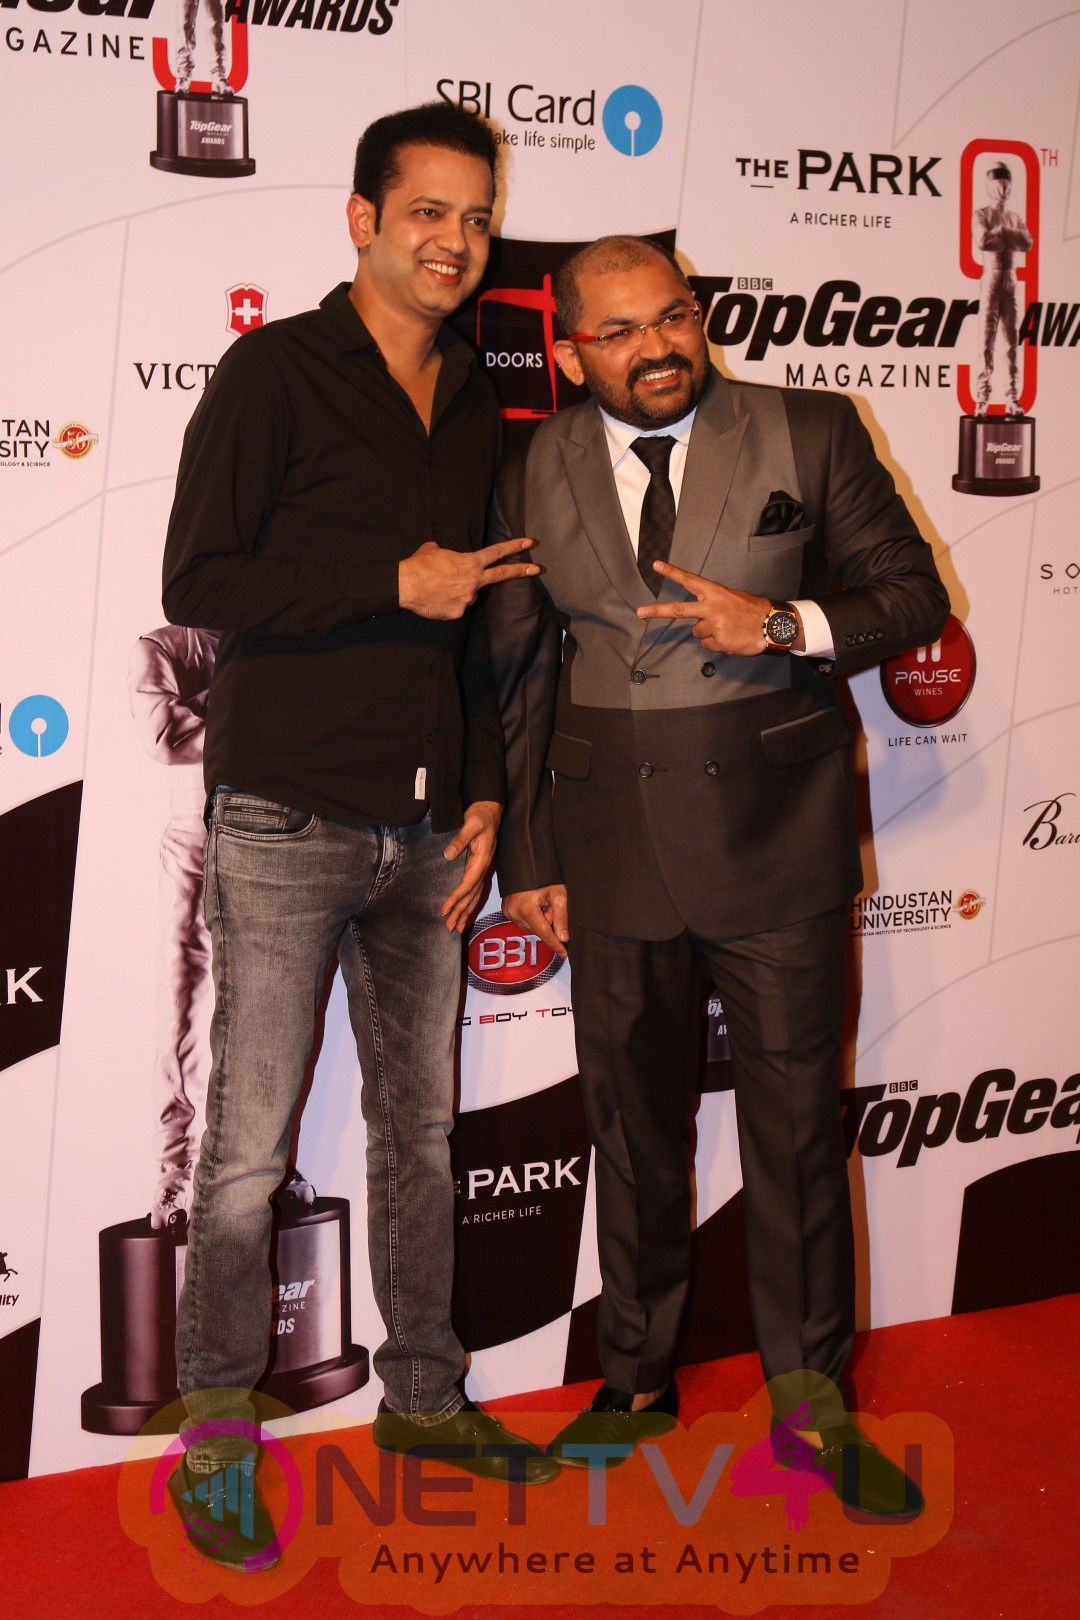 9th Edition Of Top Gear Magazine Awards With Many Celebs Photos